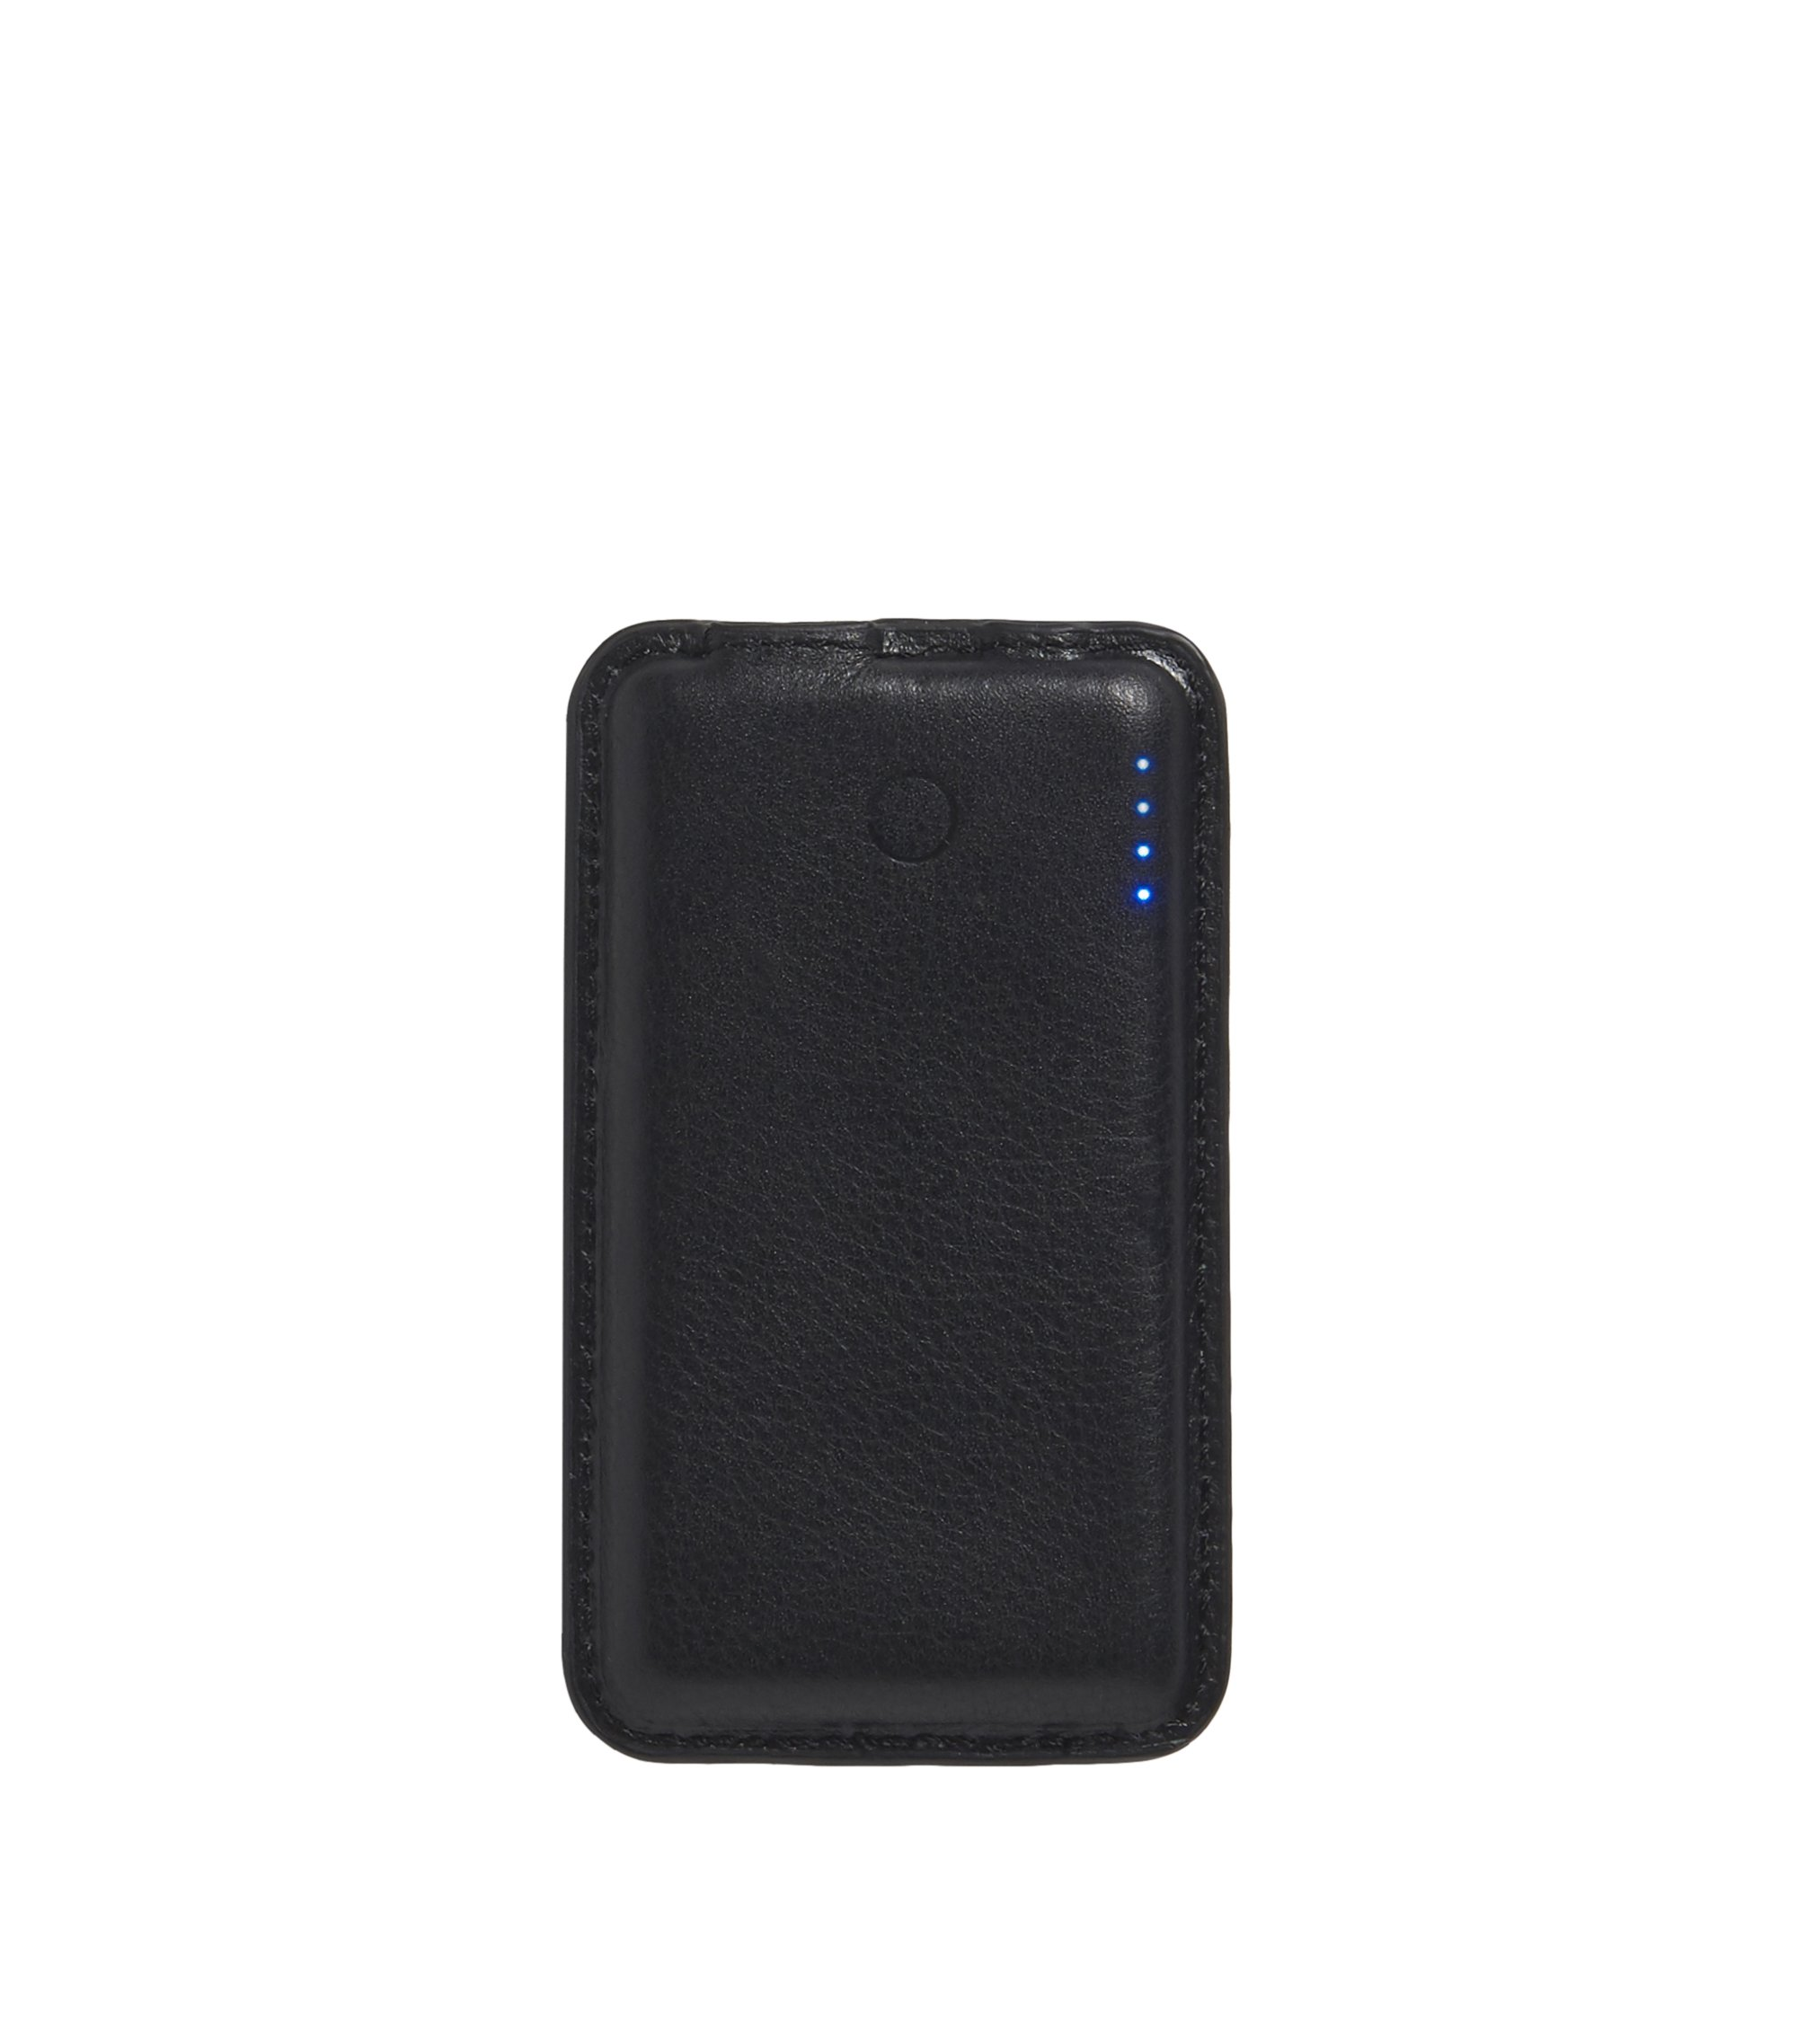 Phone Powerbank, Black